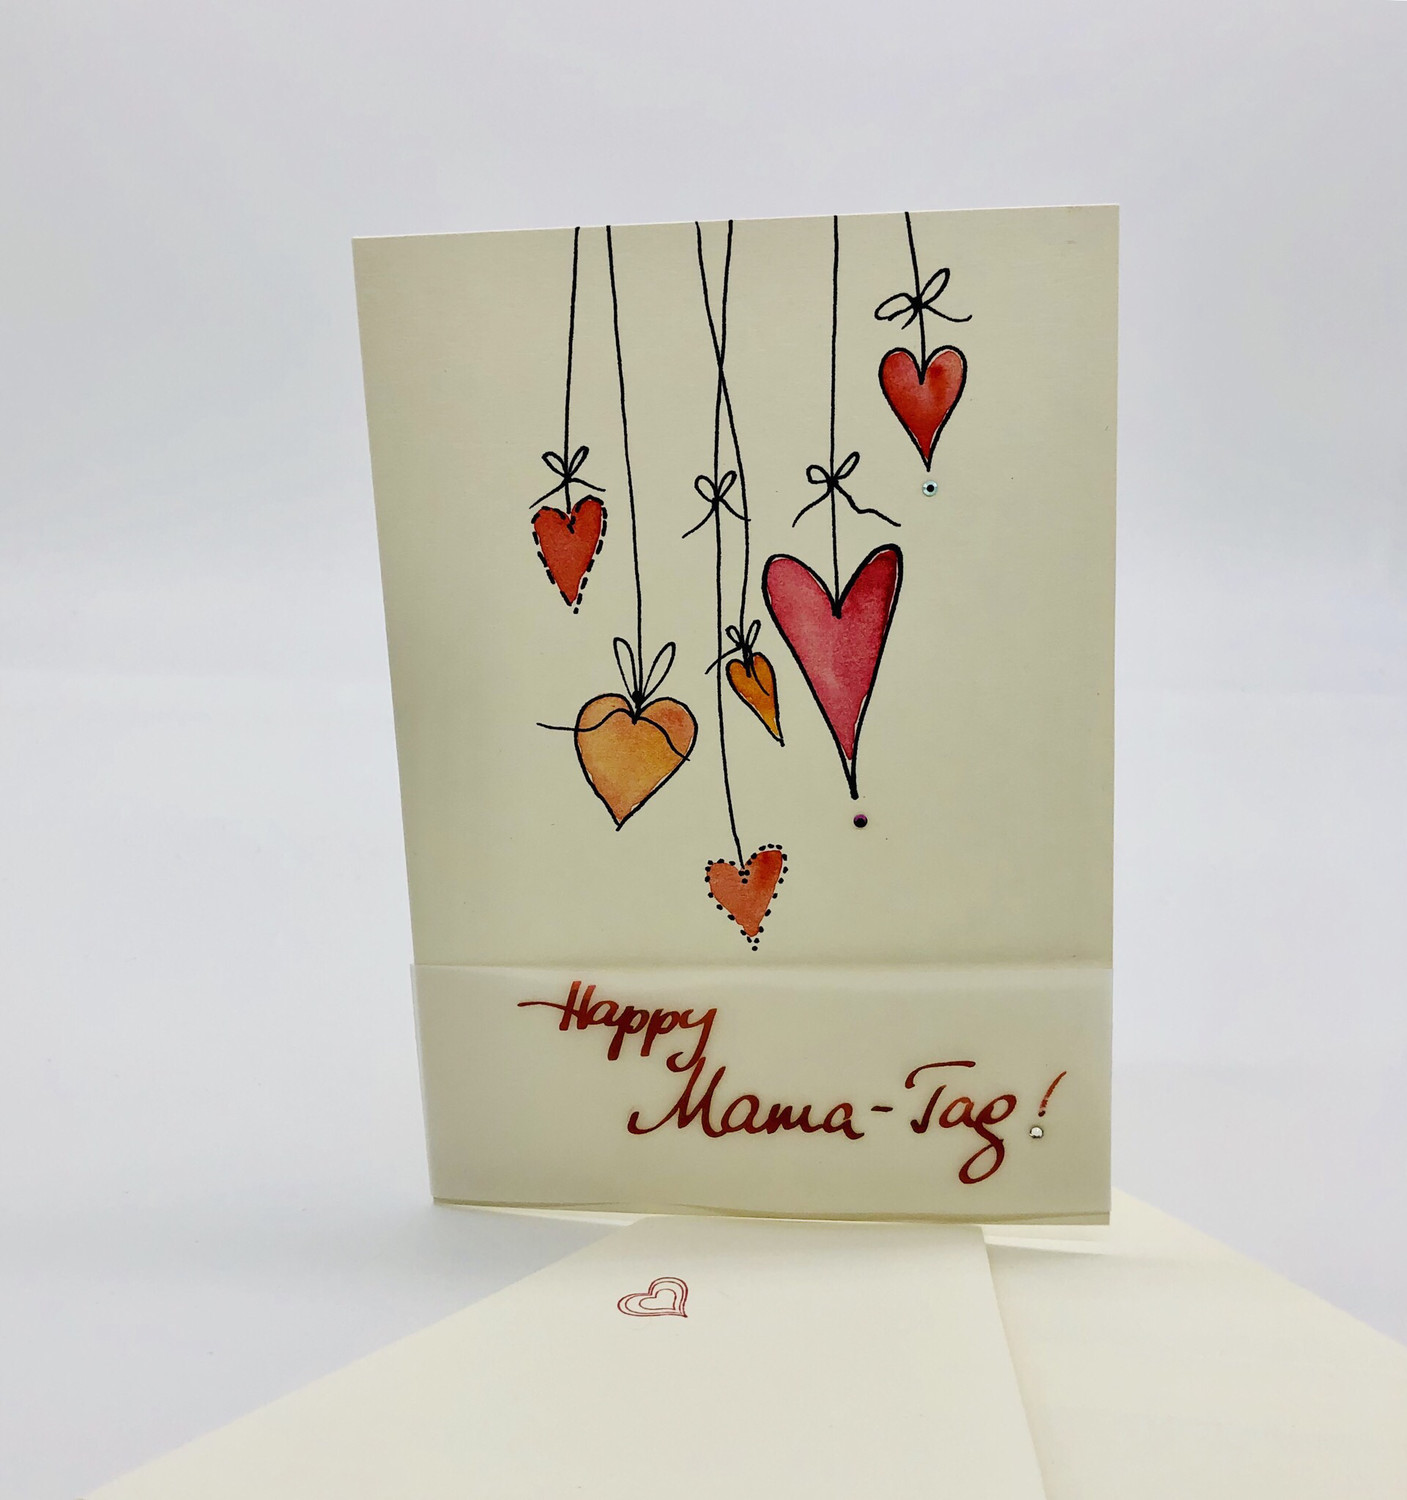 "Billett ""handmade"" Muttertag - Happy Mama-Tag!"